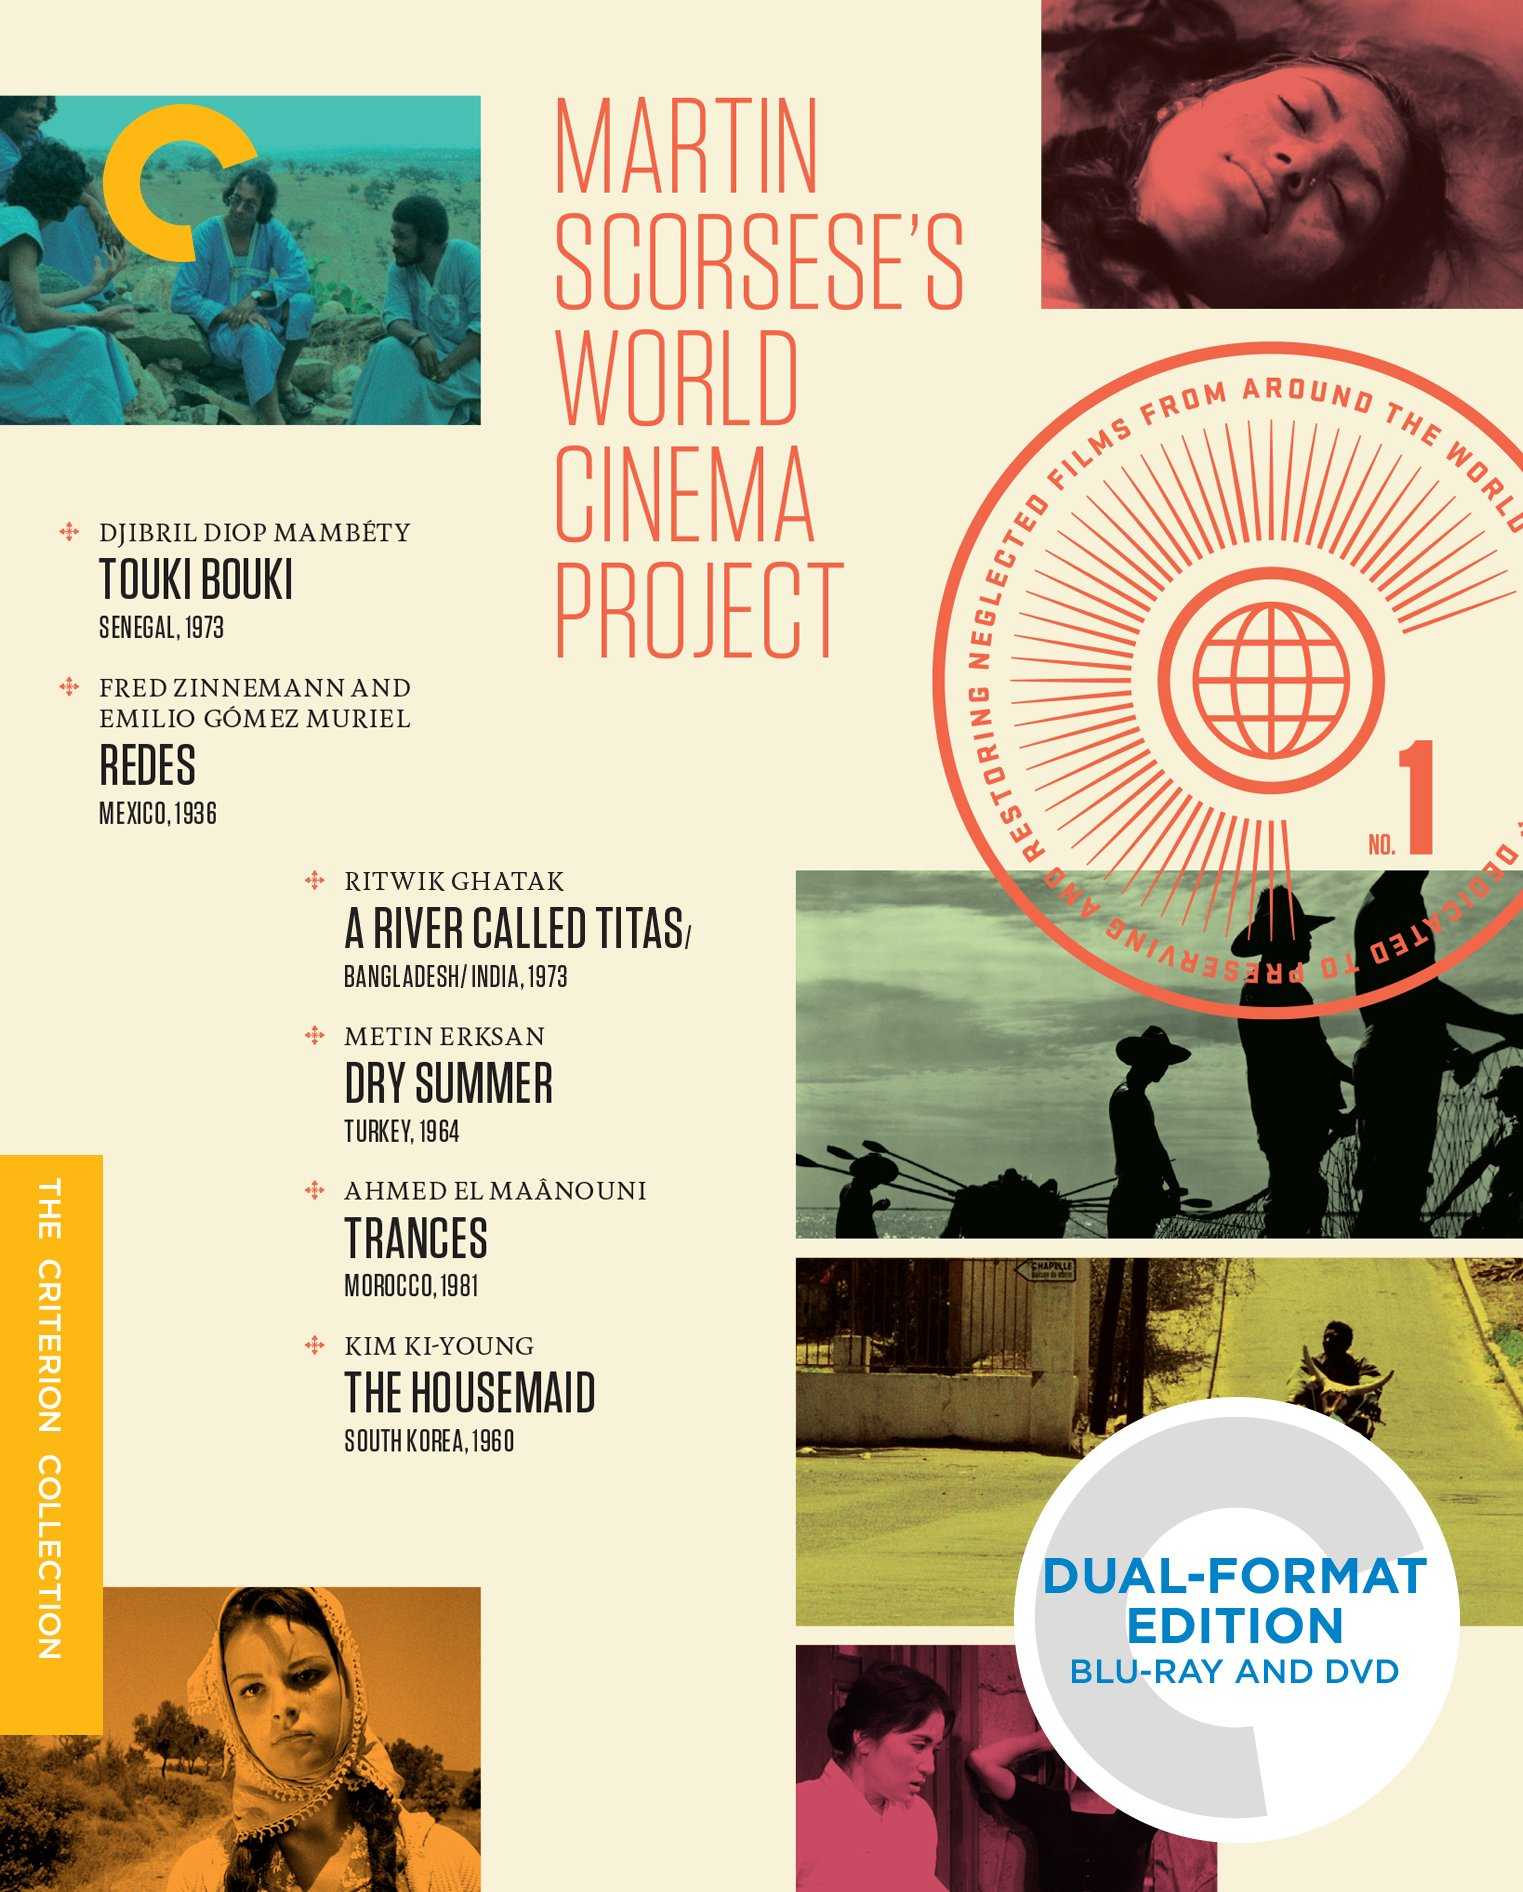 Martin Scorsese's World Cinema Project (Touki Bouki / Redes / A River Called Titas / Dry Summer / Trances / The Housemaid) (Criterion Collection) (Blu-ray + DVD) by Criterion